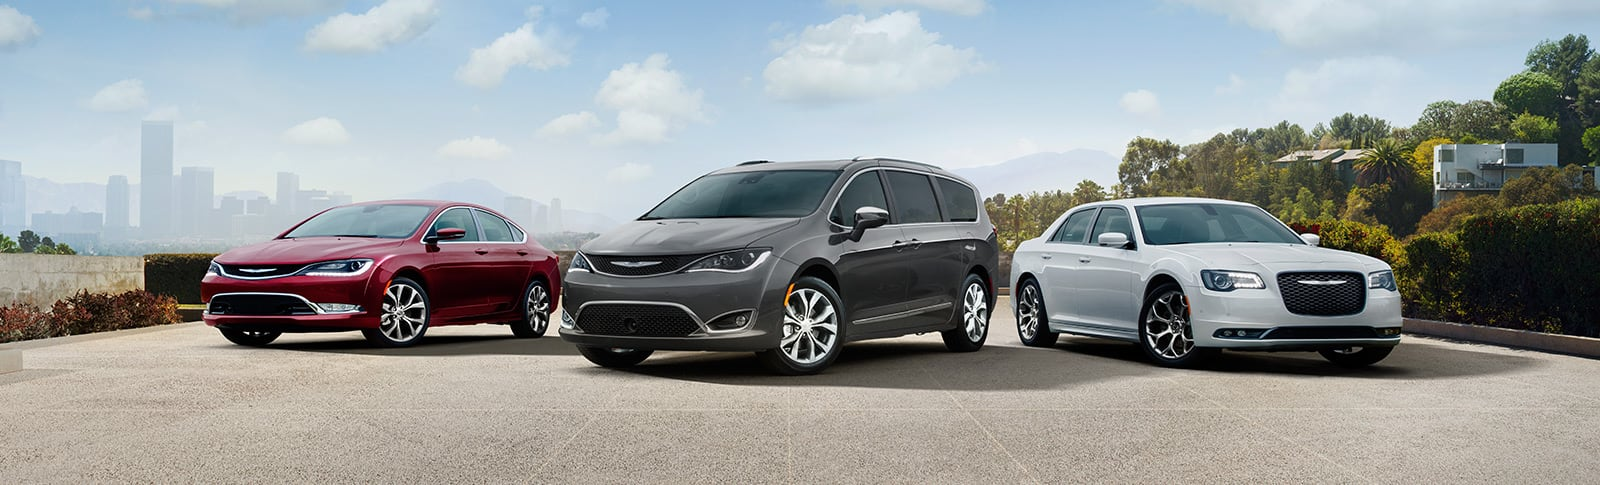 This Is Chrysler Vehicle Lineup